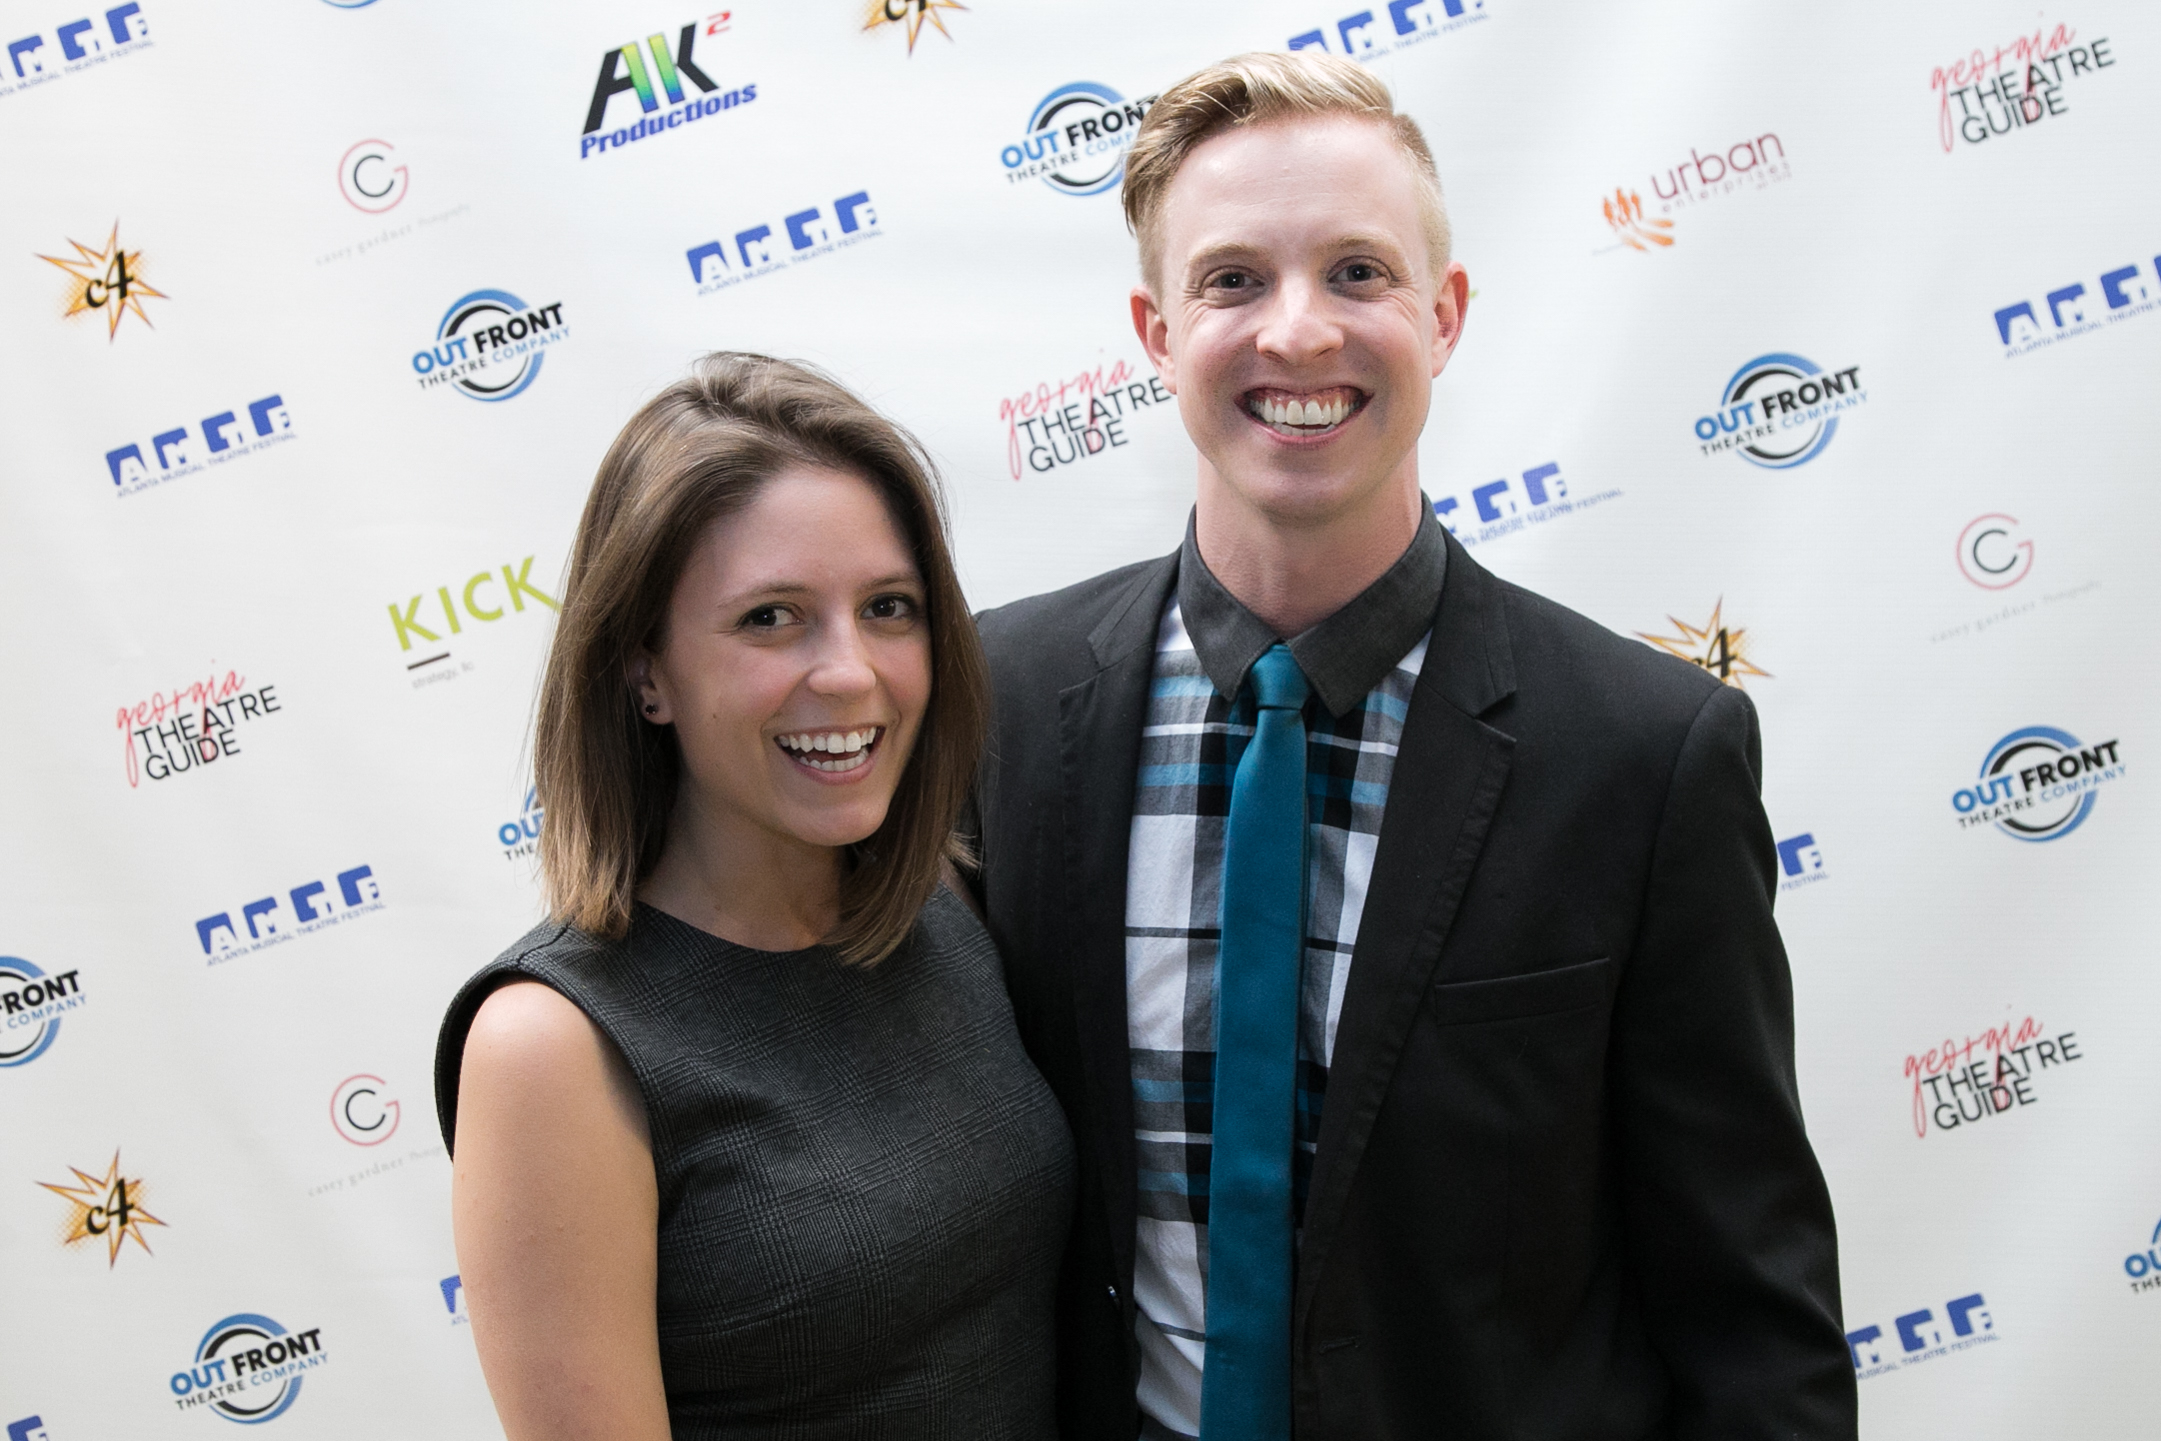 At the 2018 Atlanta Musical Theatre Festival with photography sponsor Casey Gardner.